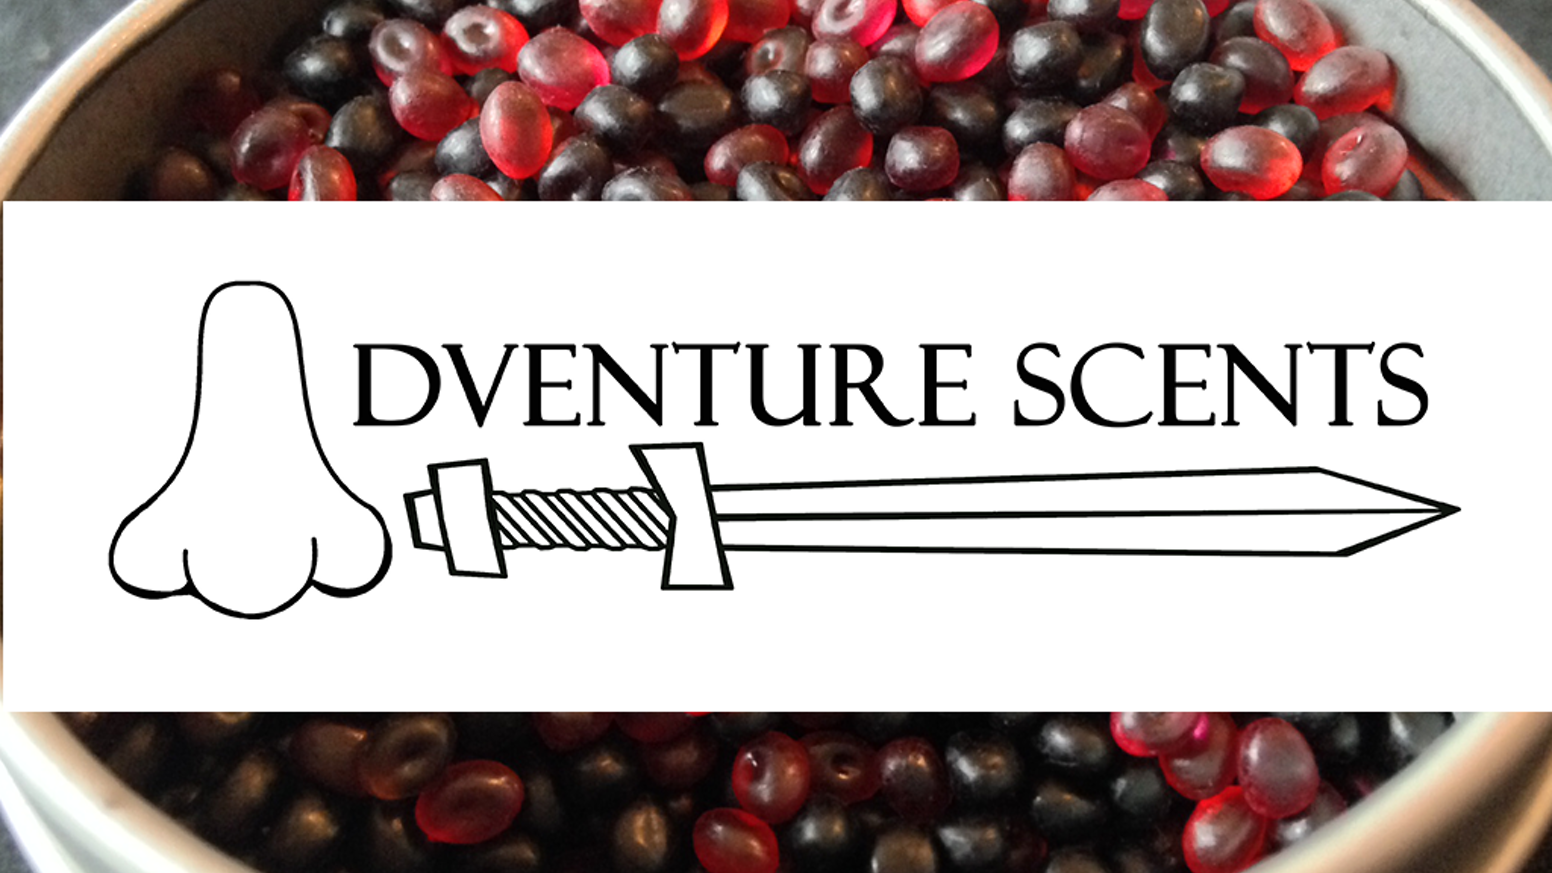 Unique fantasy and sci-fi scents that set the scene for your role playing and video games, or accent your costumes and cosplay.